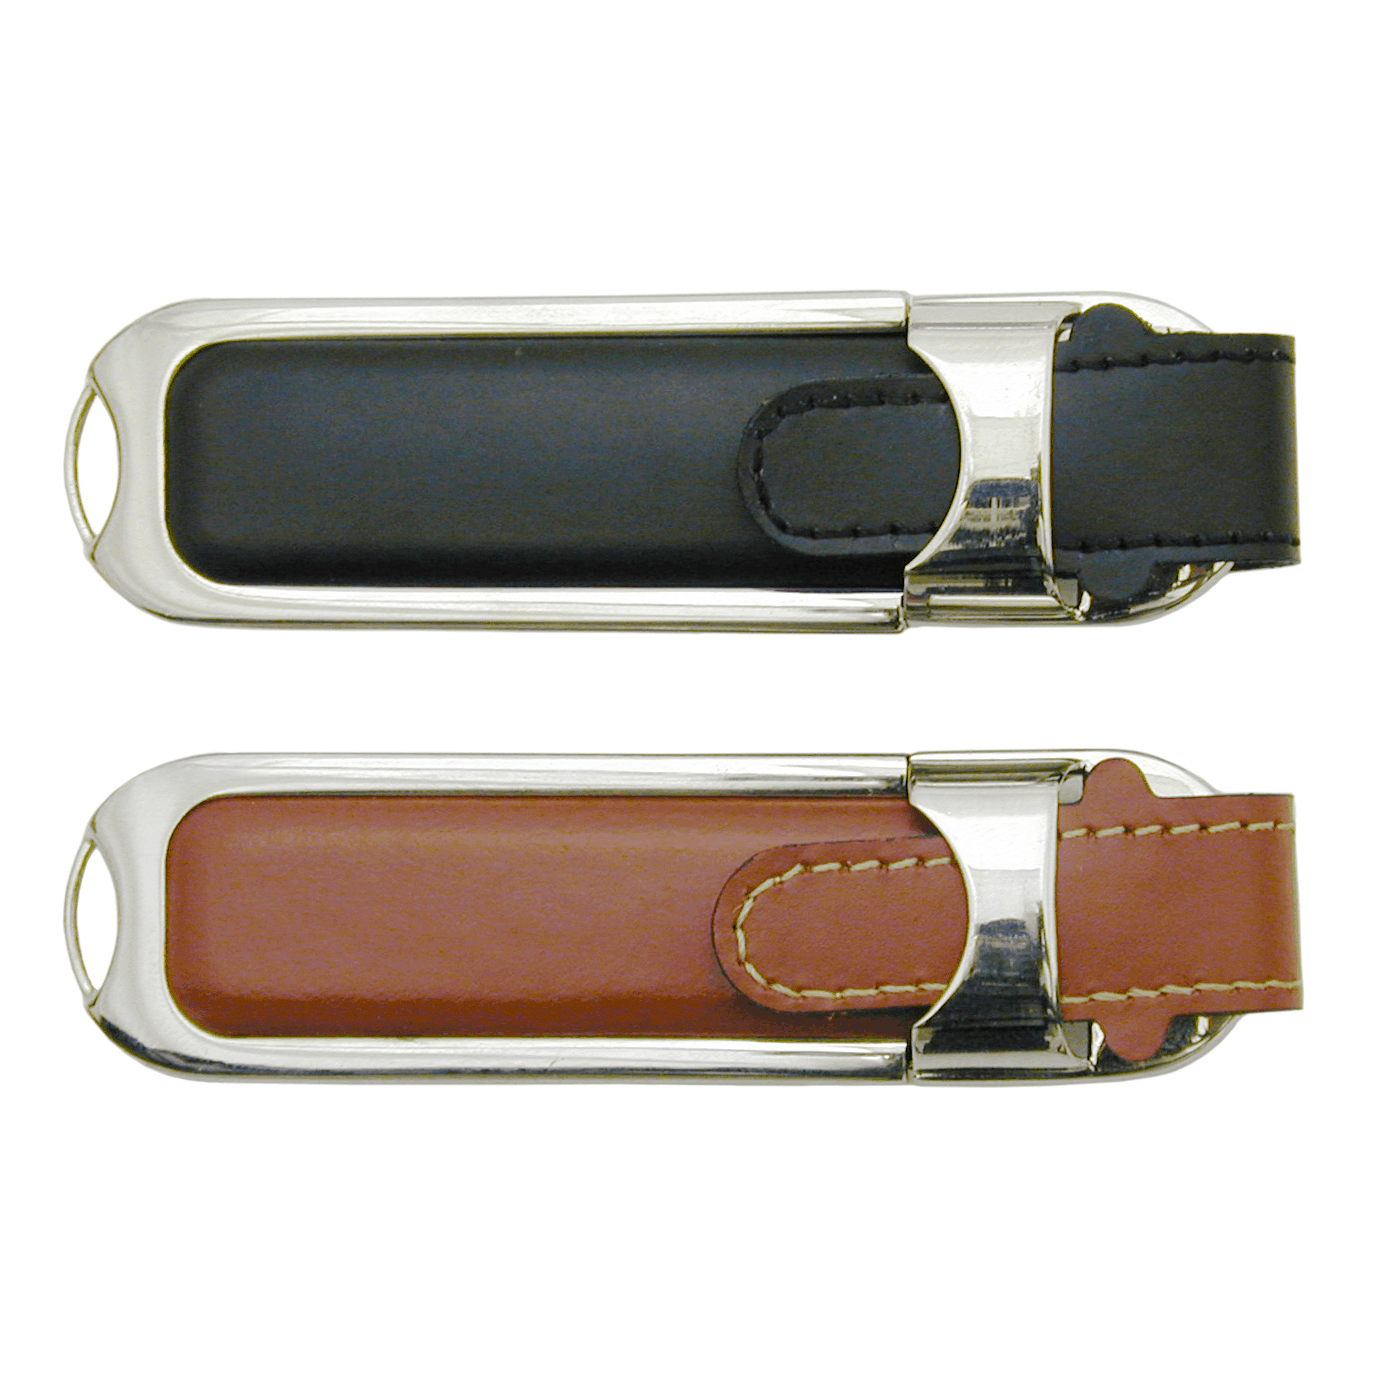 Genuine Leather USB Flash Drive - 16GB